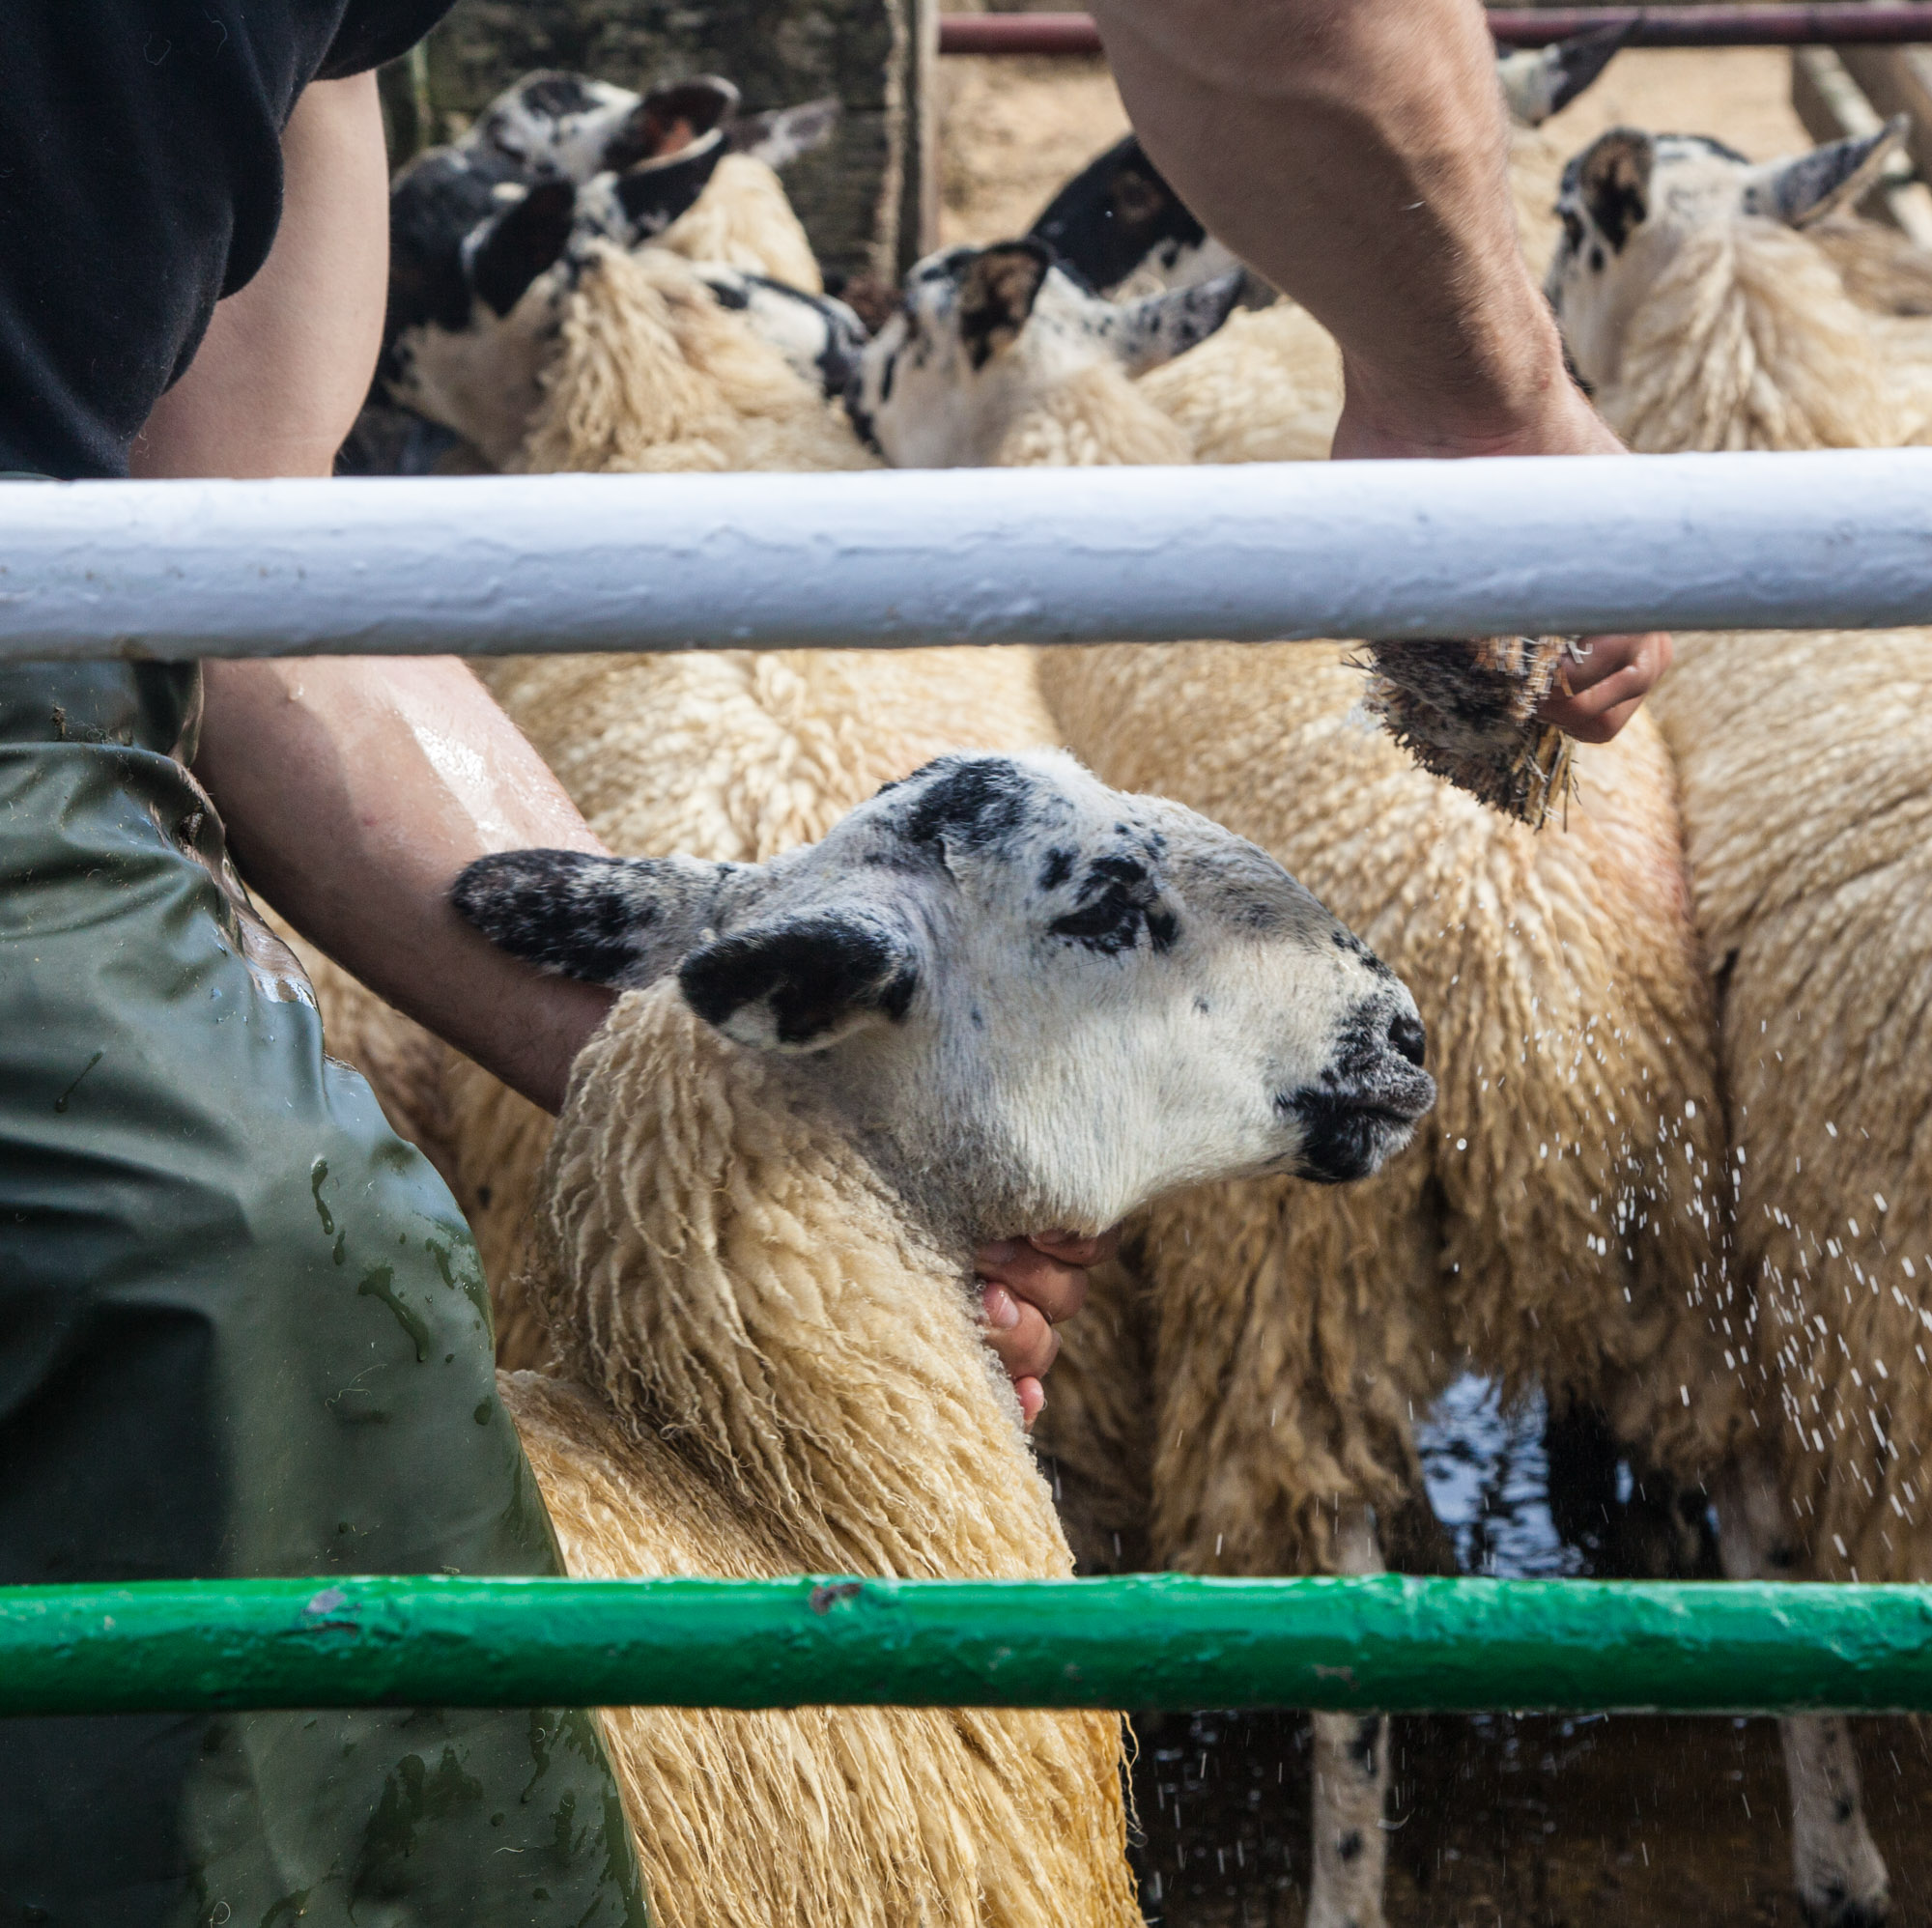 lamb-slaughter-cleaning-preparation-4.jpg